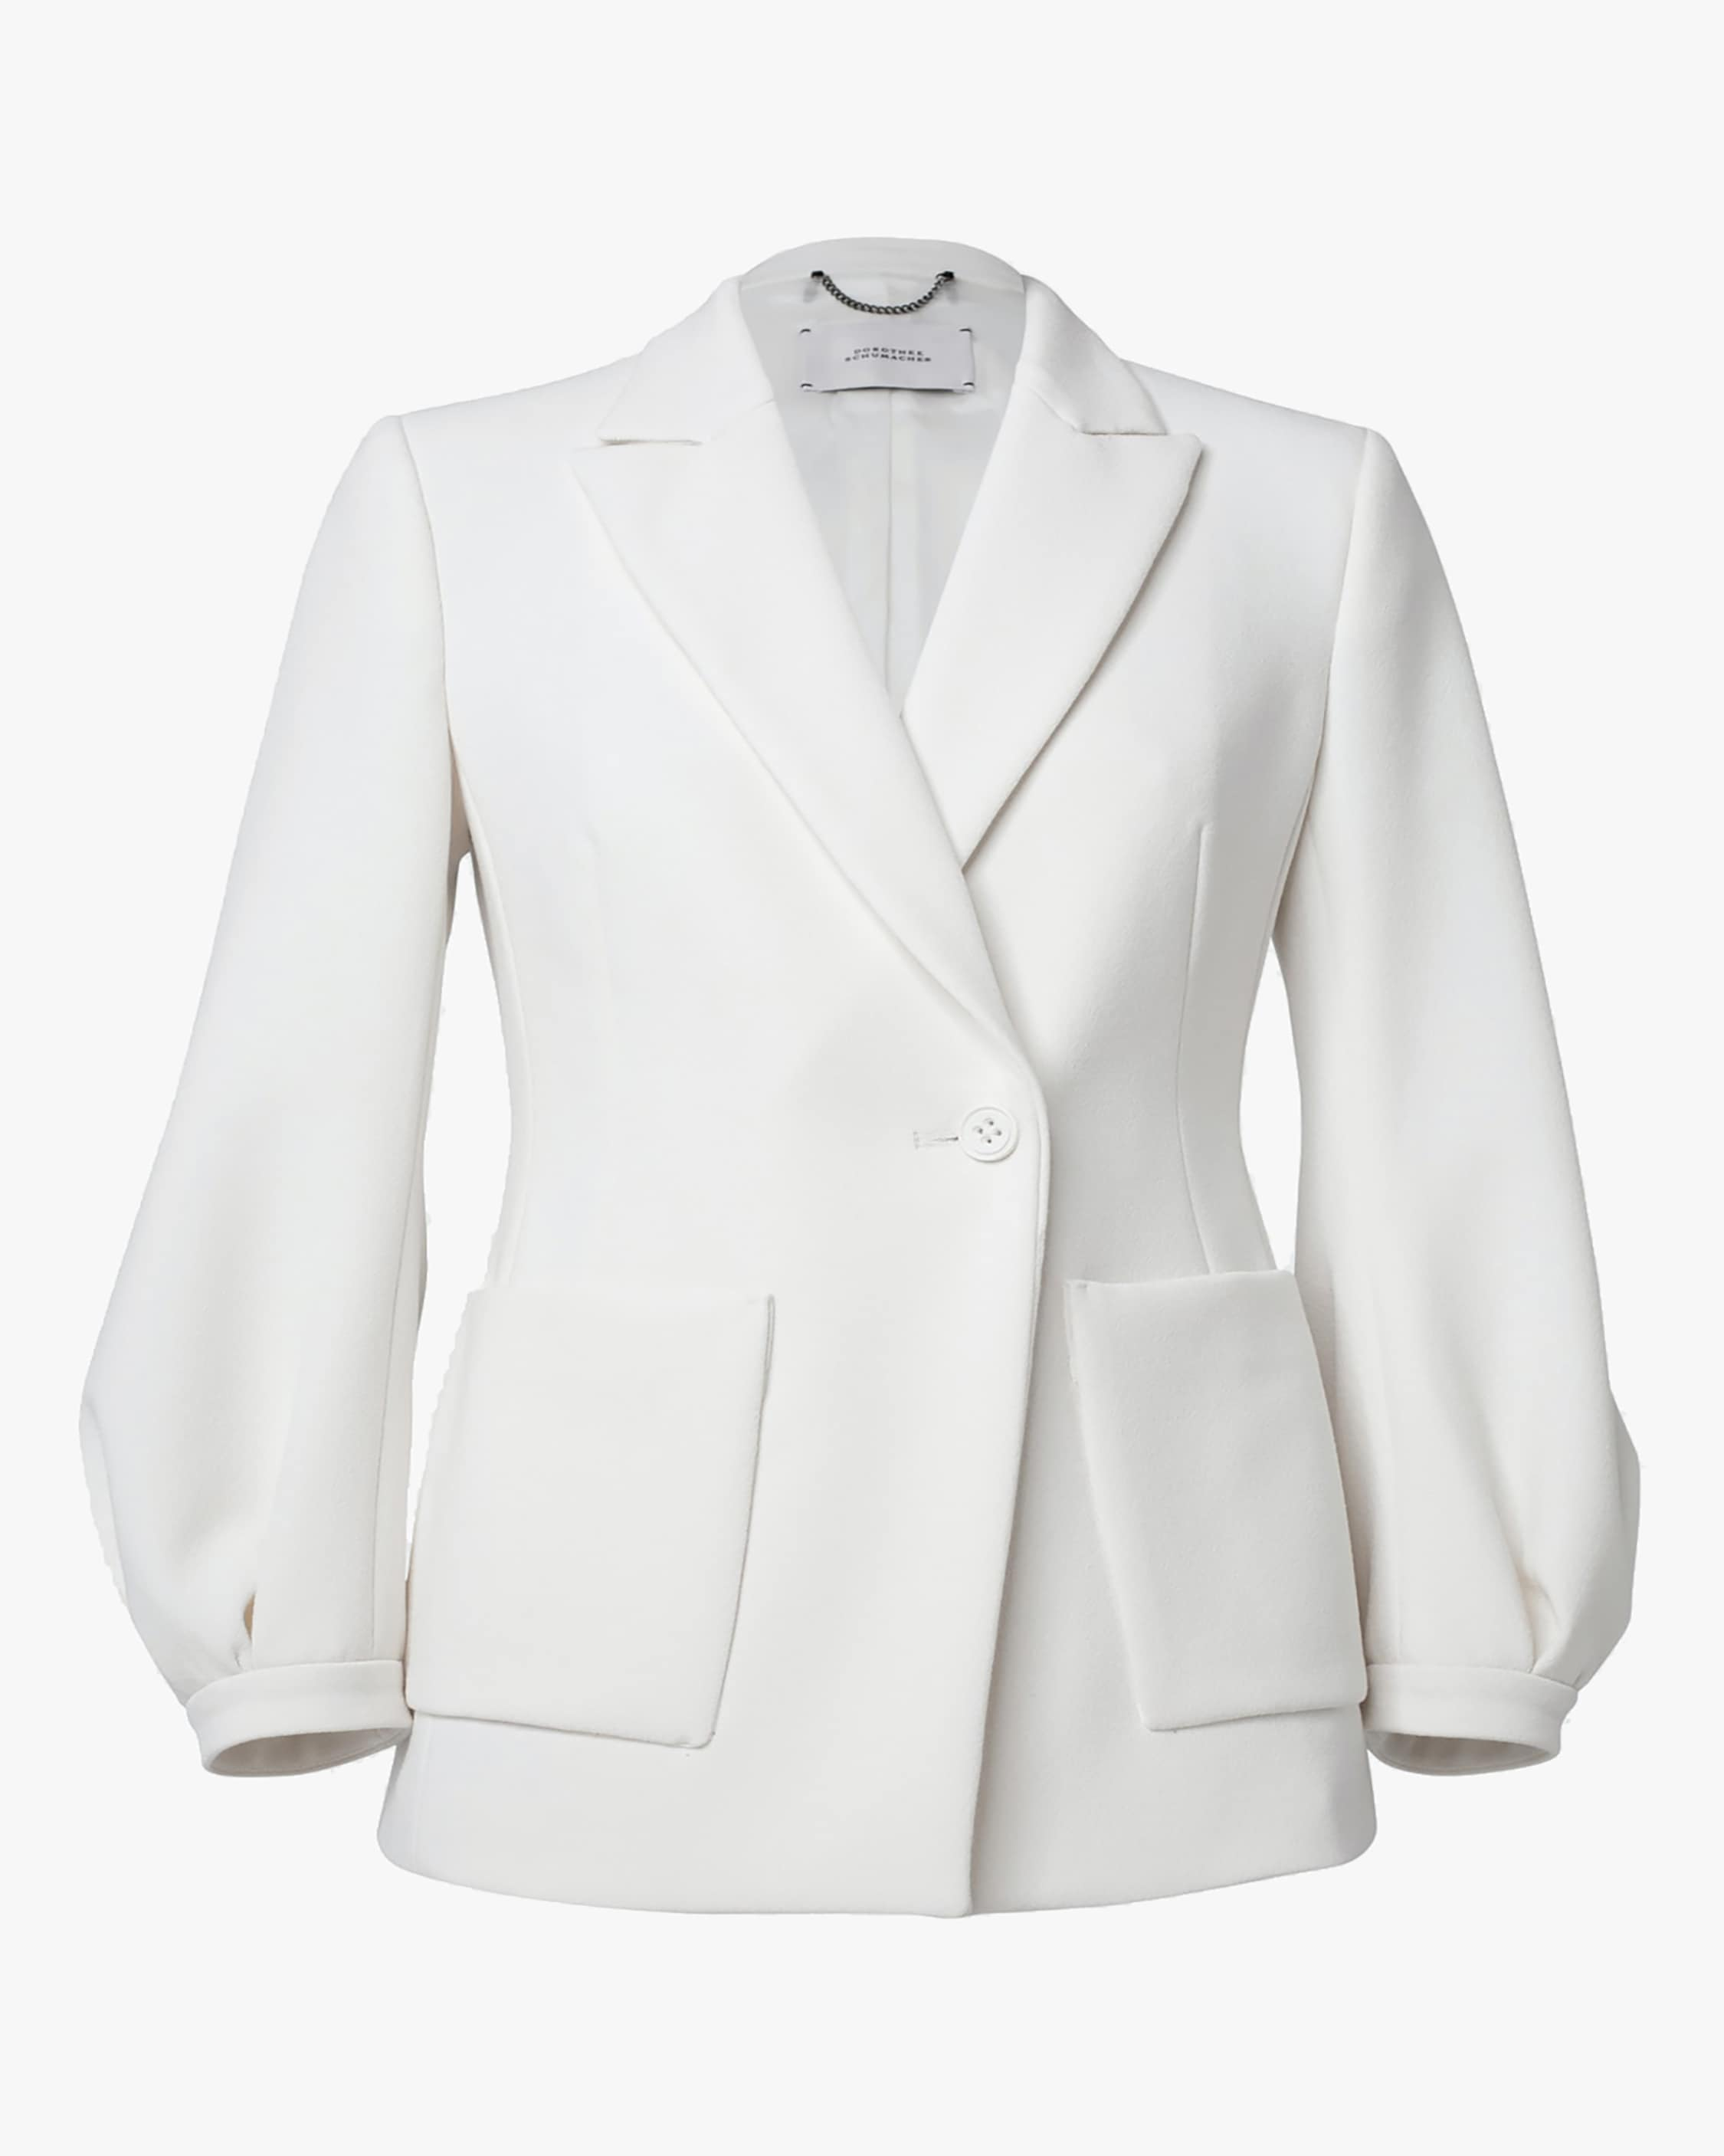 Dorothee Schumacher SOPHISTICATED PERFECTION JACKET